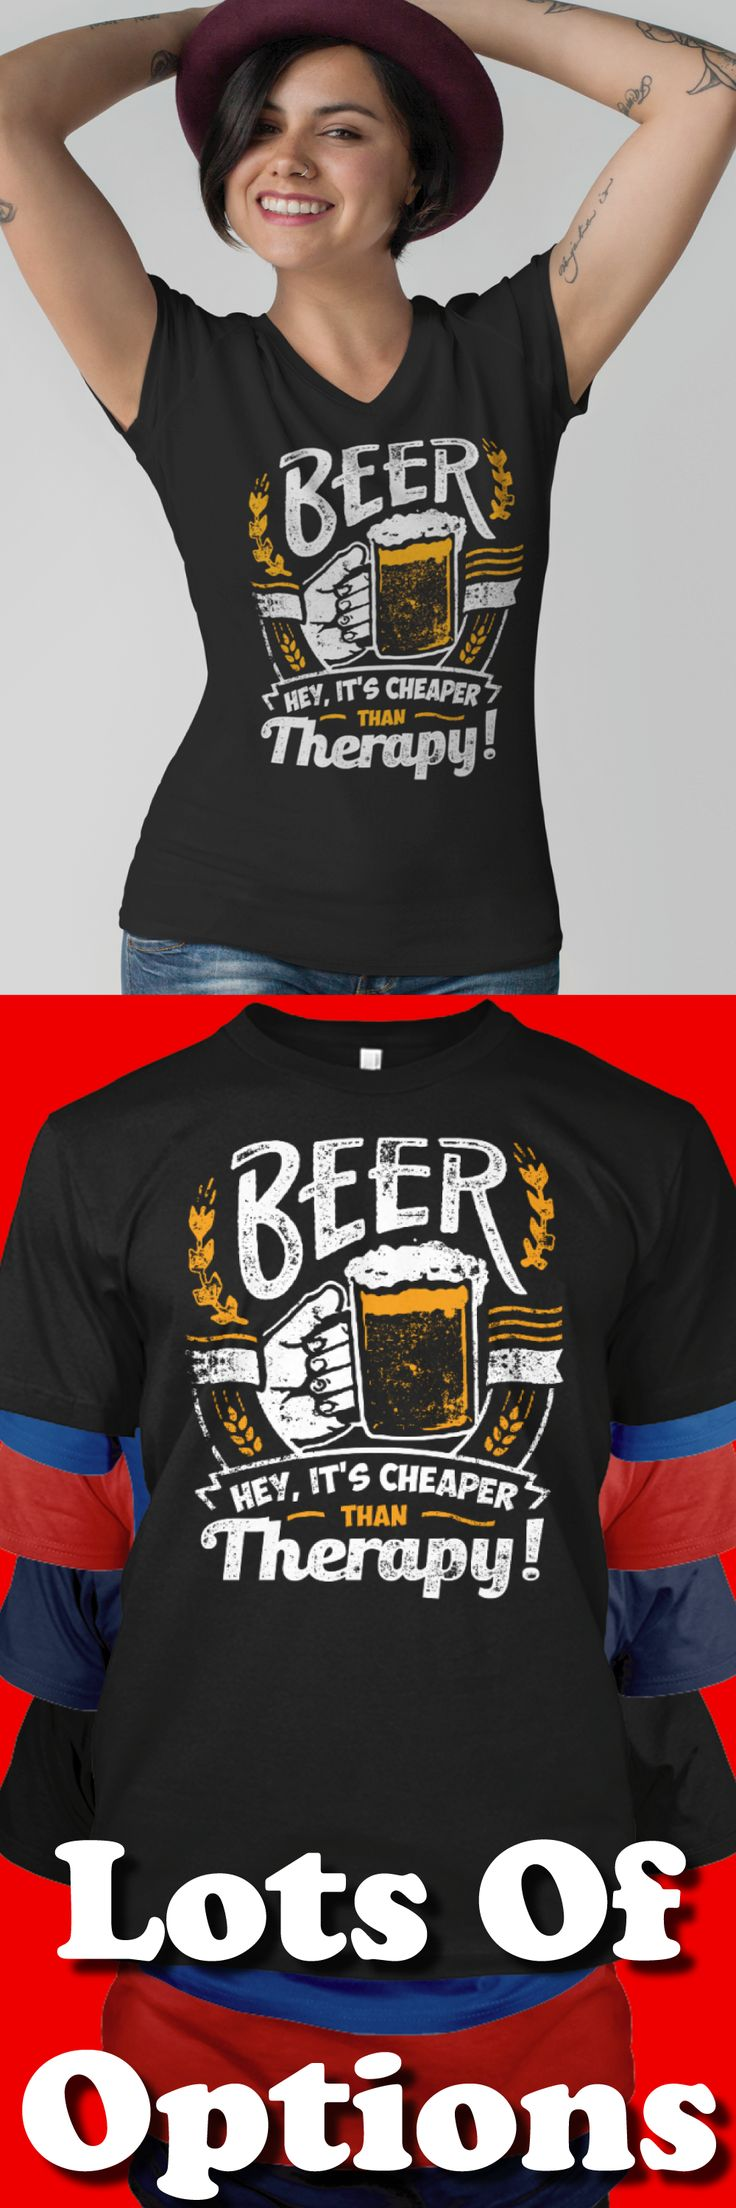 Beer Shirt: You Drink Beer? Love Funny Beer Shirts? Great Beer Humor Gift! Lots Of Sizes & Colors. Like Beer, Beer Humor, Funny Beer Shirt Sayings, Funny t-shirts and hoodies for beer lovers and Bar Drinking Humor? Strict Limit Of 5 Shirts! Treat Yourself & Click Now! https://teespring.com/BM75-982